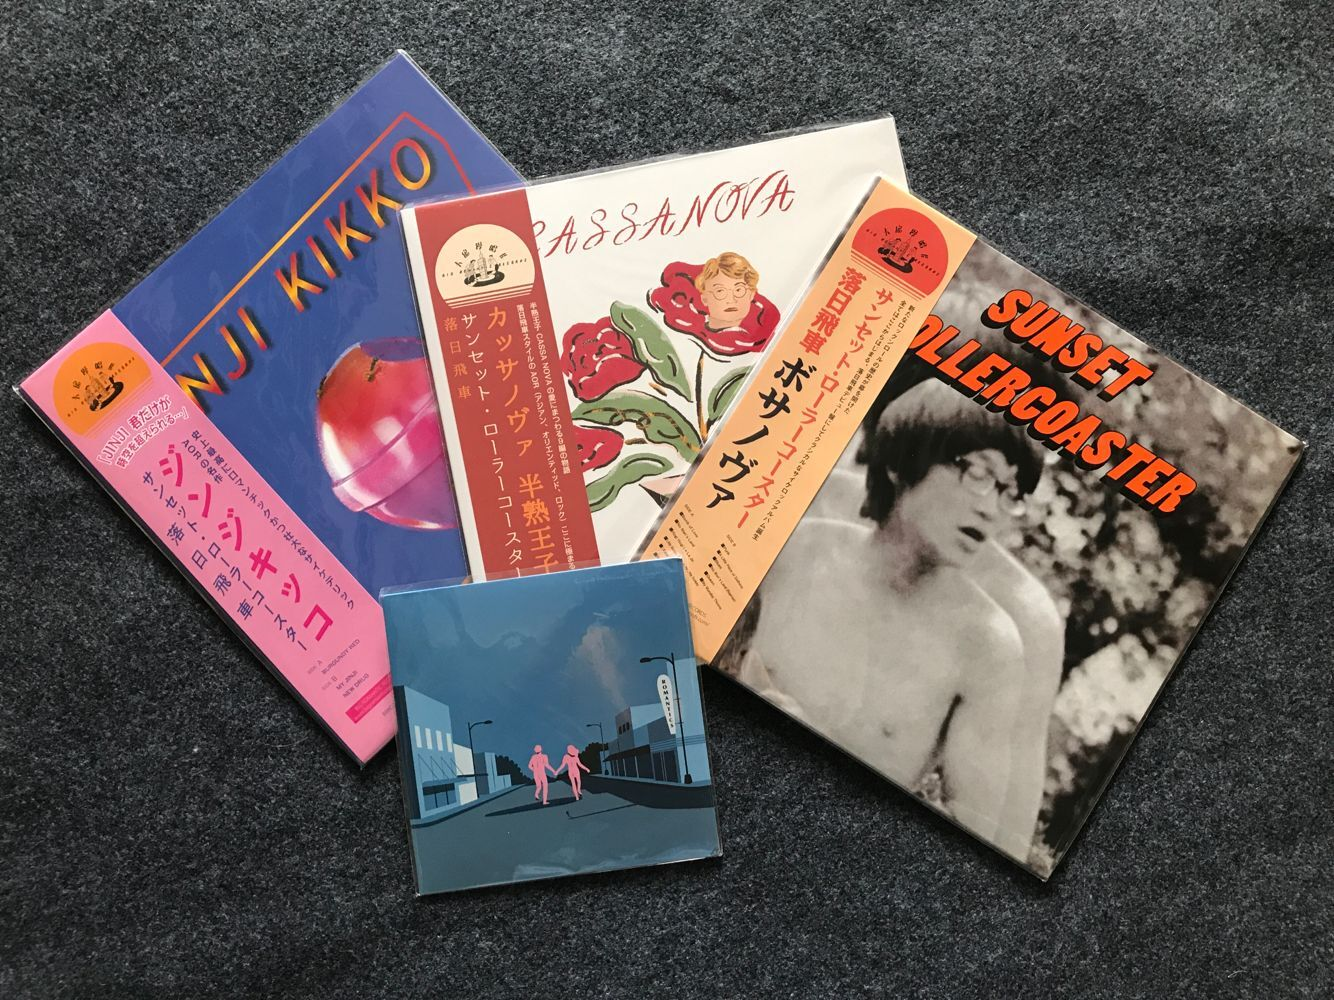 落日飛車Sunset Rollercoaster Jinji Kikko Bossa Nova Cassa Nova Travel Agency / Cry For The Moon LP New